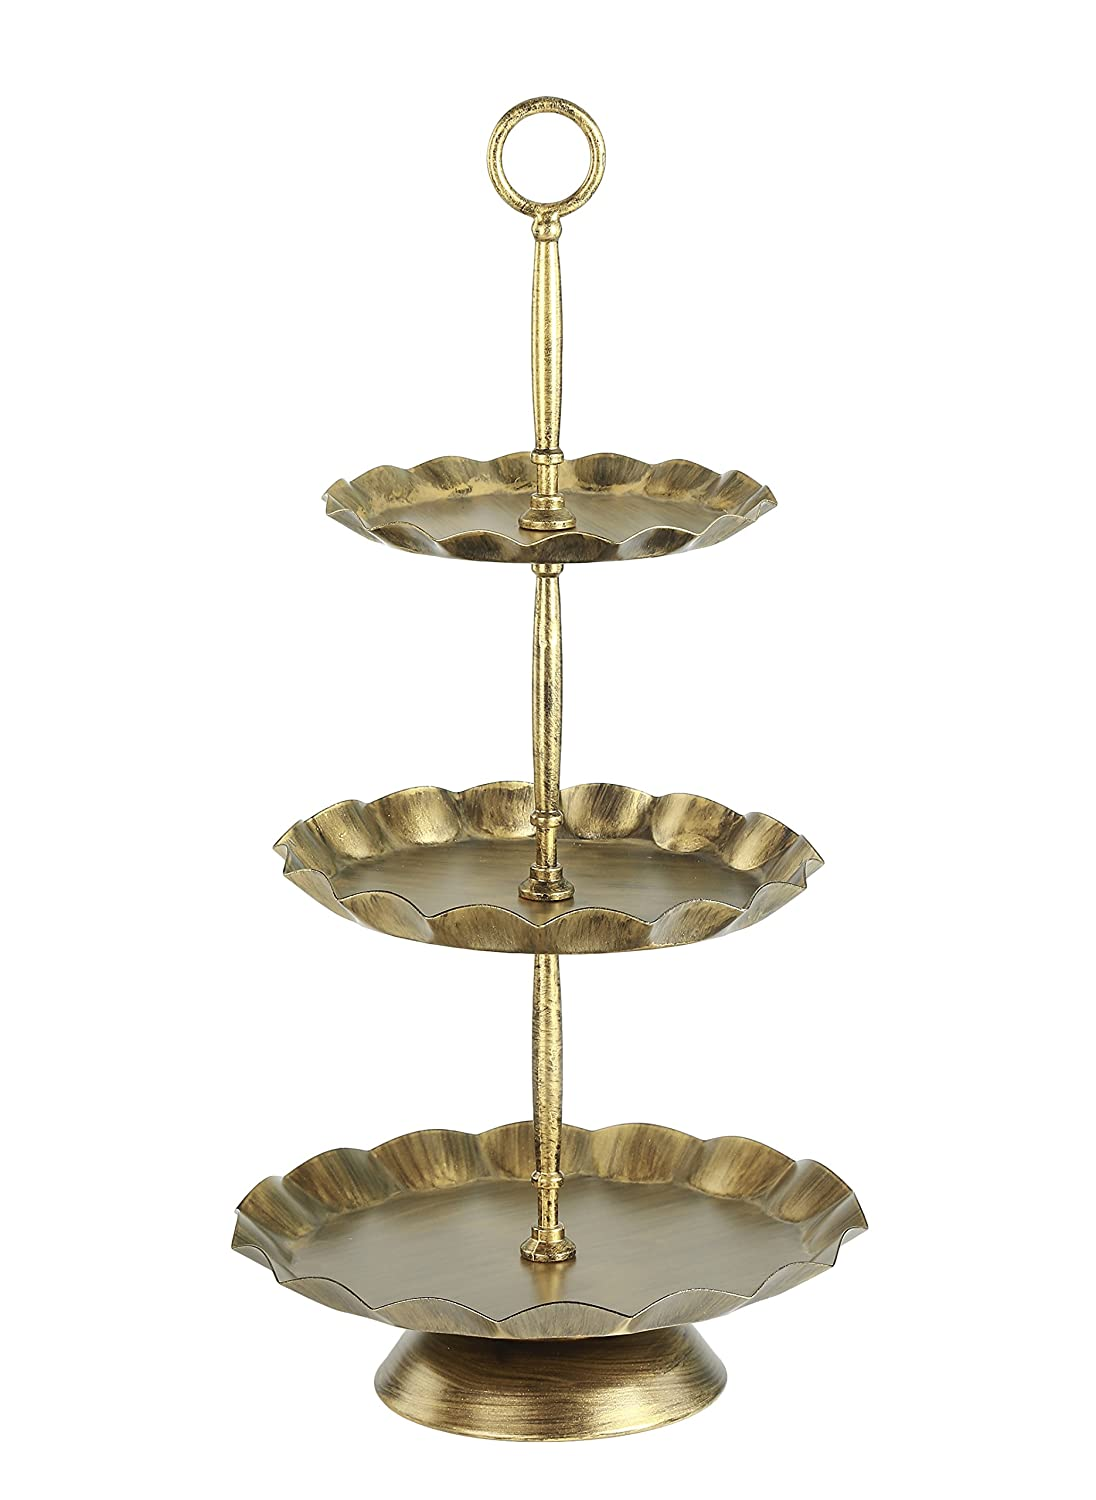 Vilavita 3-Set Antique Cake Stand Round Cupcake Stands Metal Dessert Display with Crystal Beads Gold COMINHKPR128676  sc 1 st  Weather Instruments Air Purifiers Global fashion! & Vilavita 3-Set Antique Cake Stand Round Cupcake Stands Metal Dessert ...